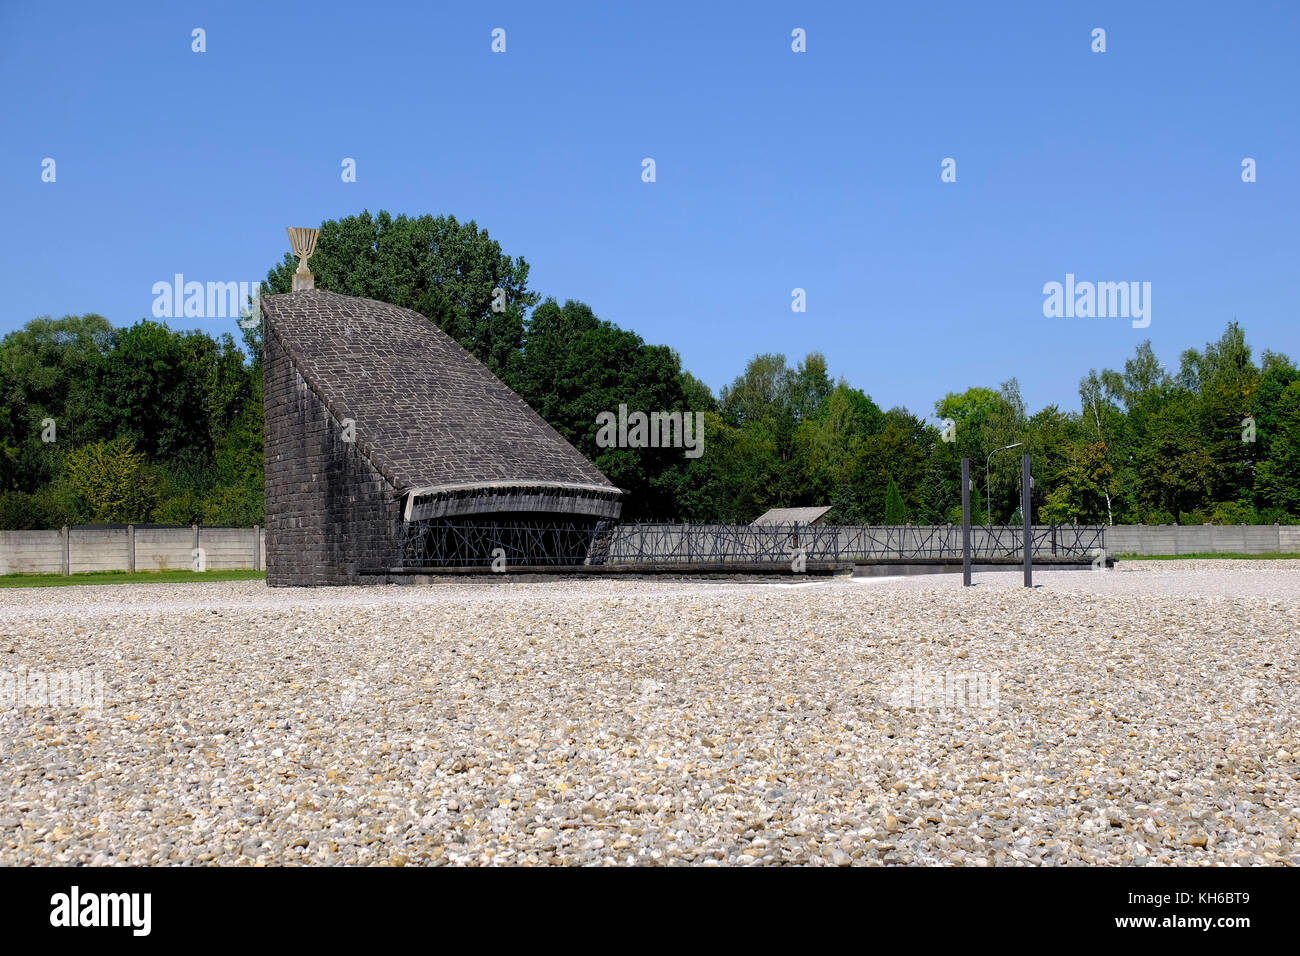 Jewish Memorial. Dachau Concentration Camp, Germany. - Stock Image